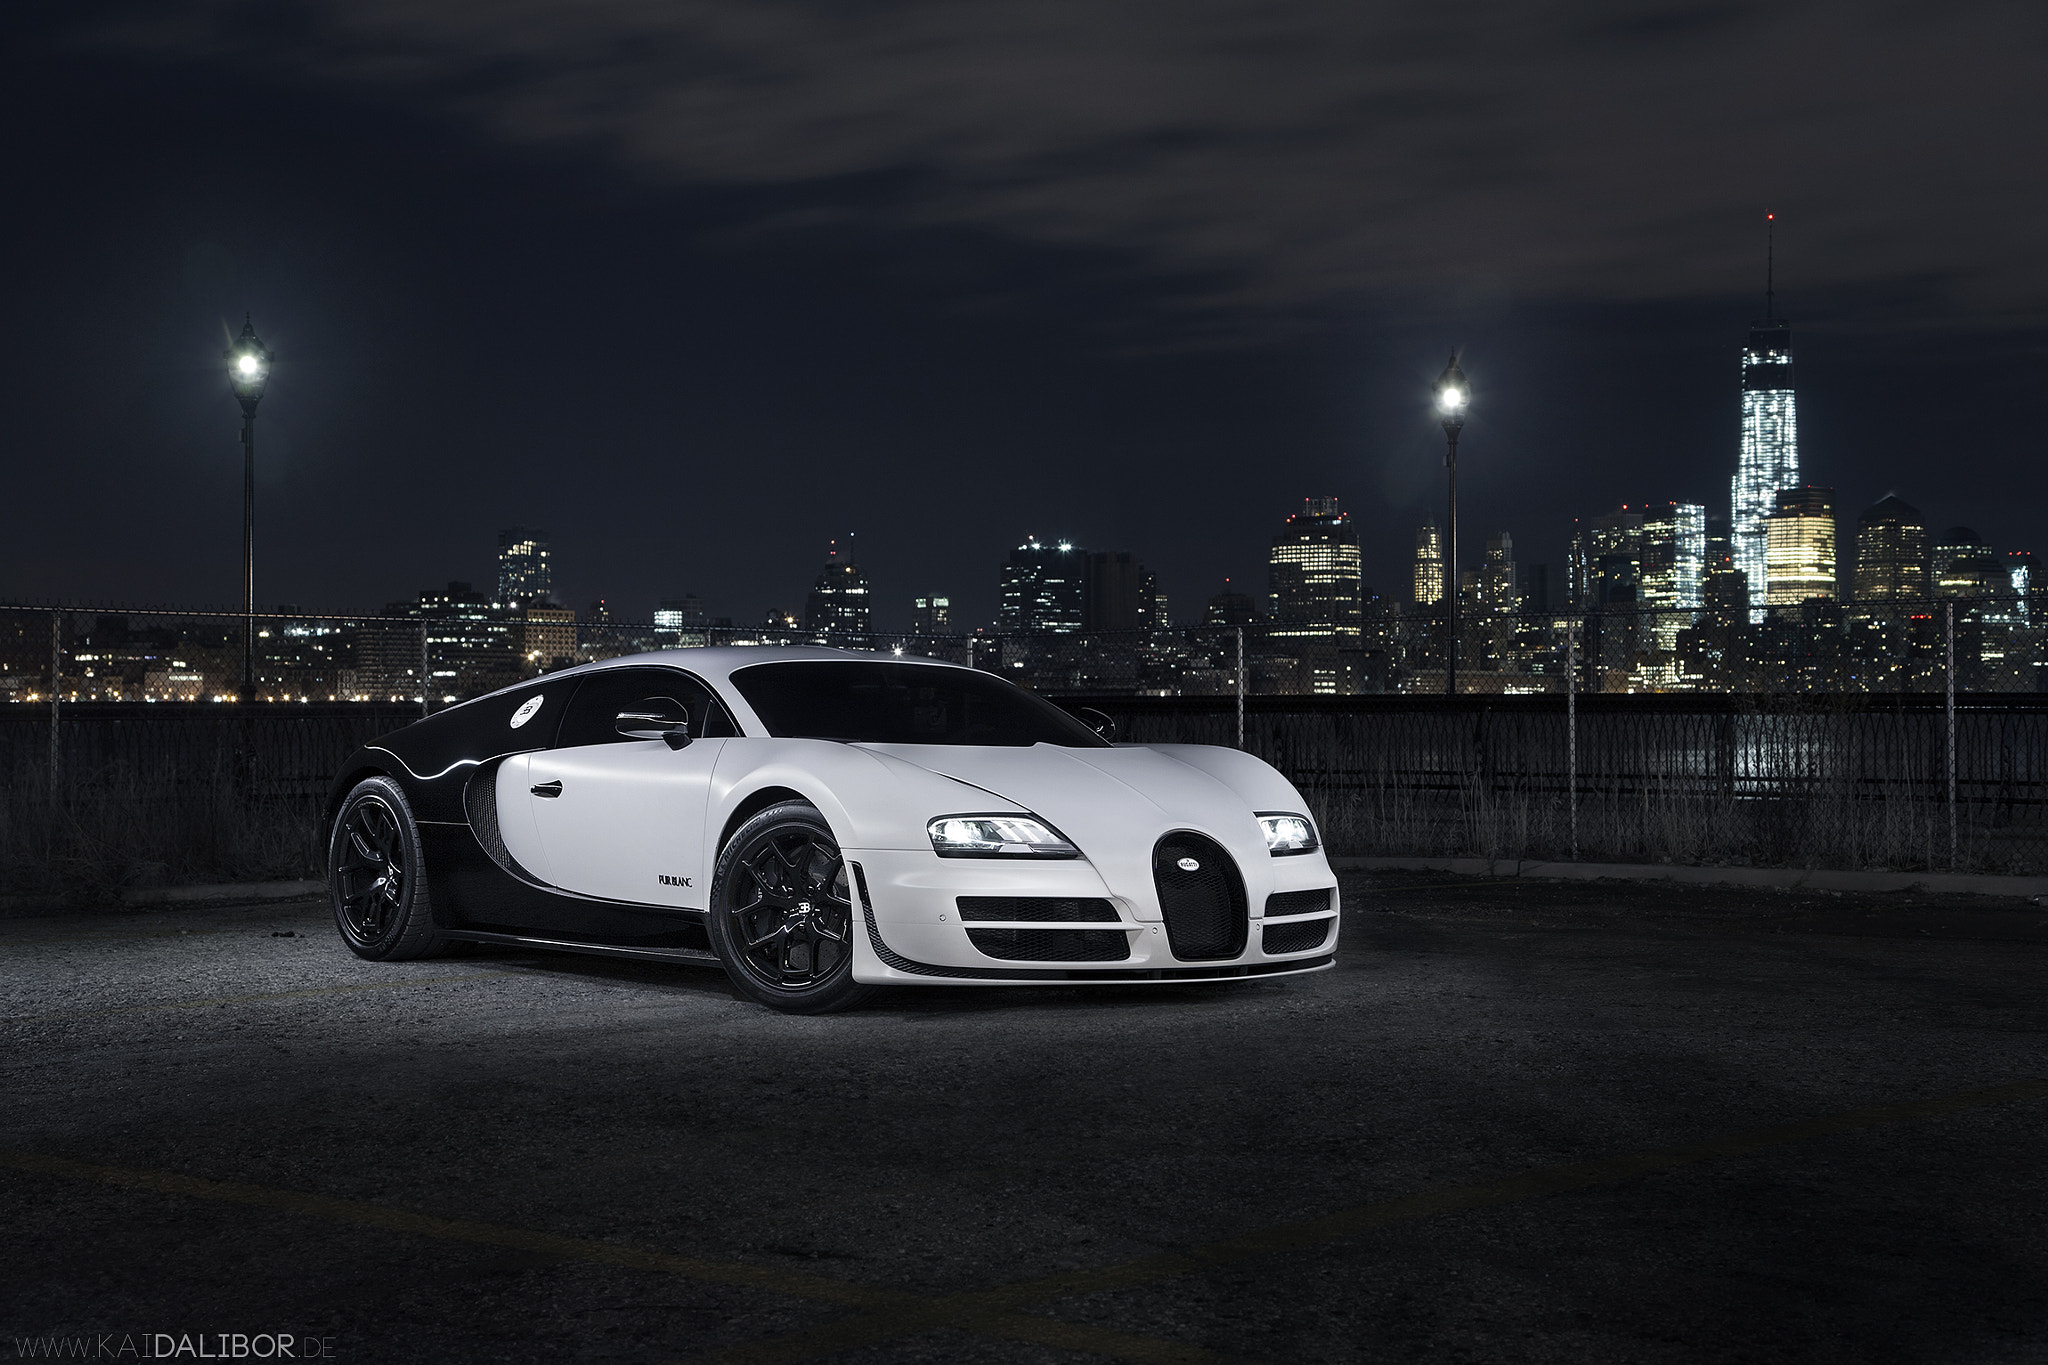 photograph bugatti veyron supersport pur blanc by kai dalibor on 500px. Black Bedroom Furniture Sets. Home Design Ideas